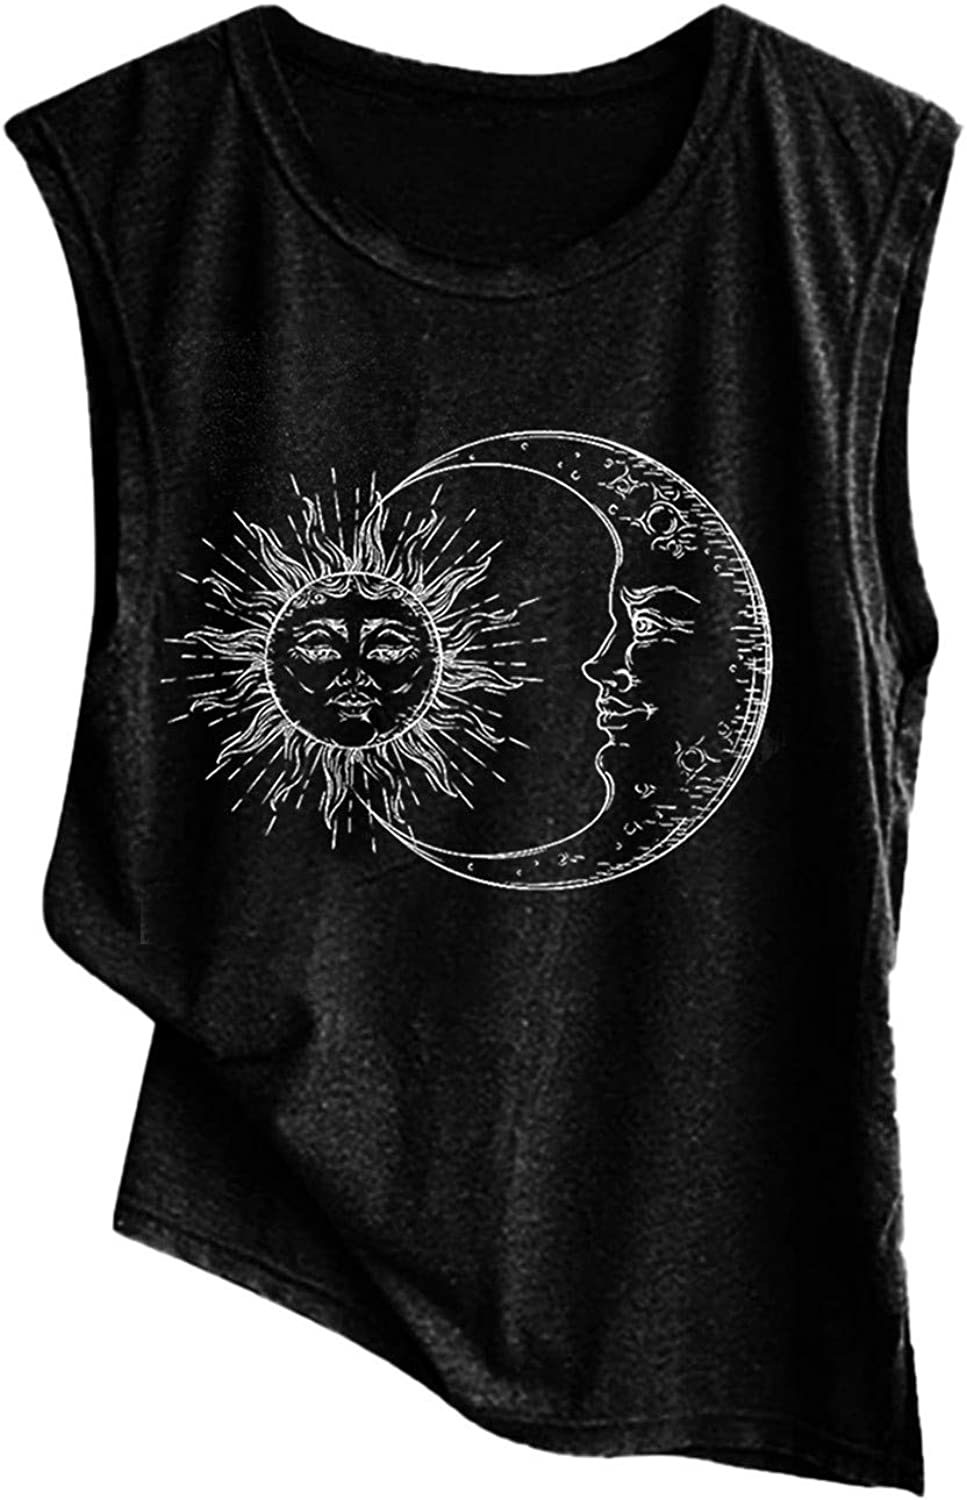 Women Tank Tops Womens Sexy Top Shirts Max 53% OFF outlet Tee Sleeveless Crop